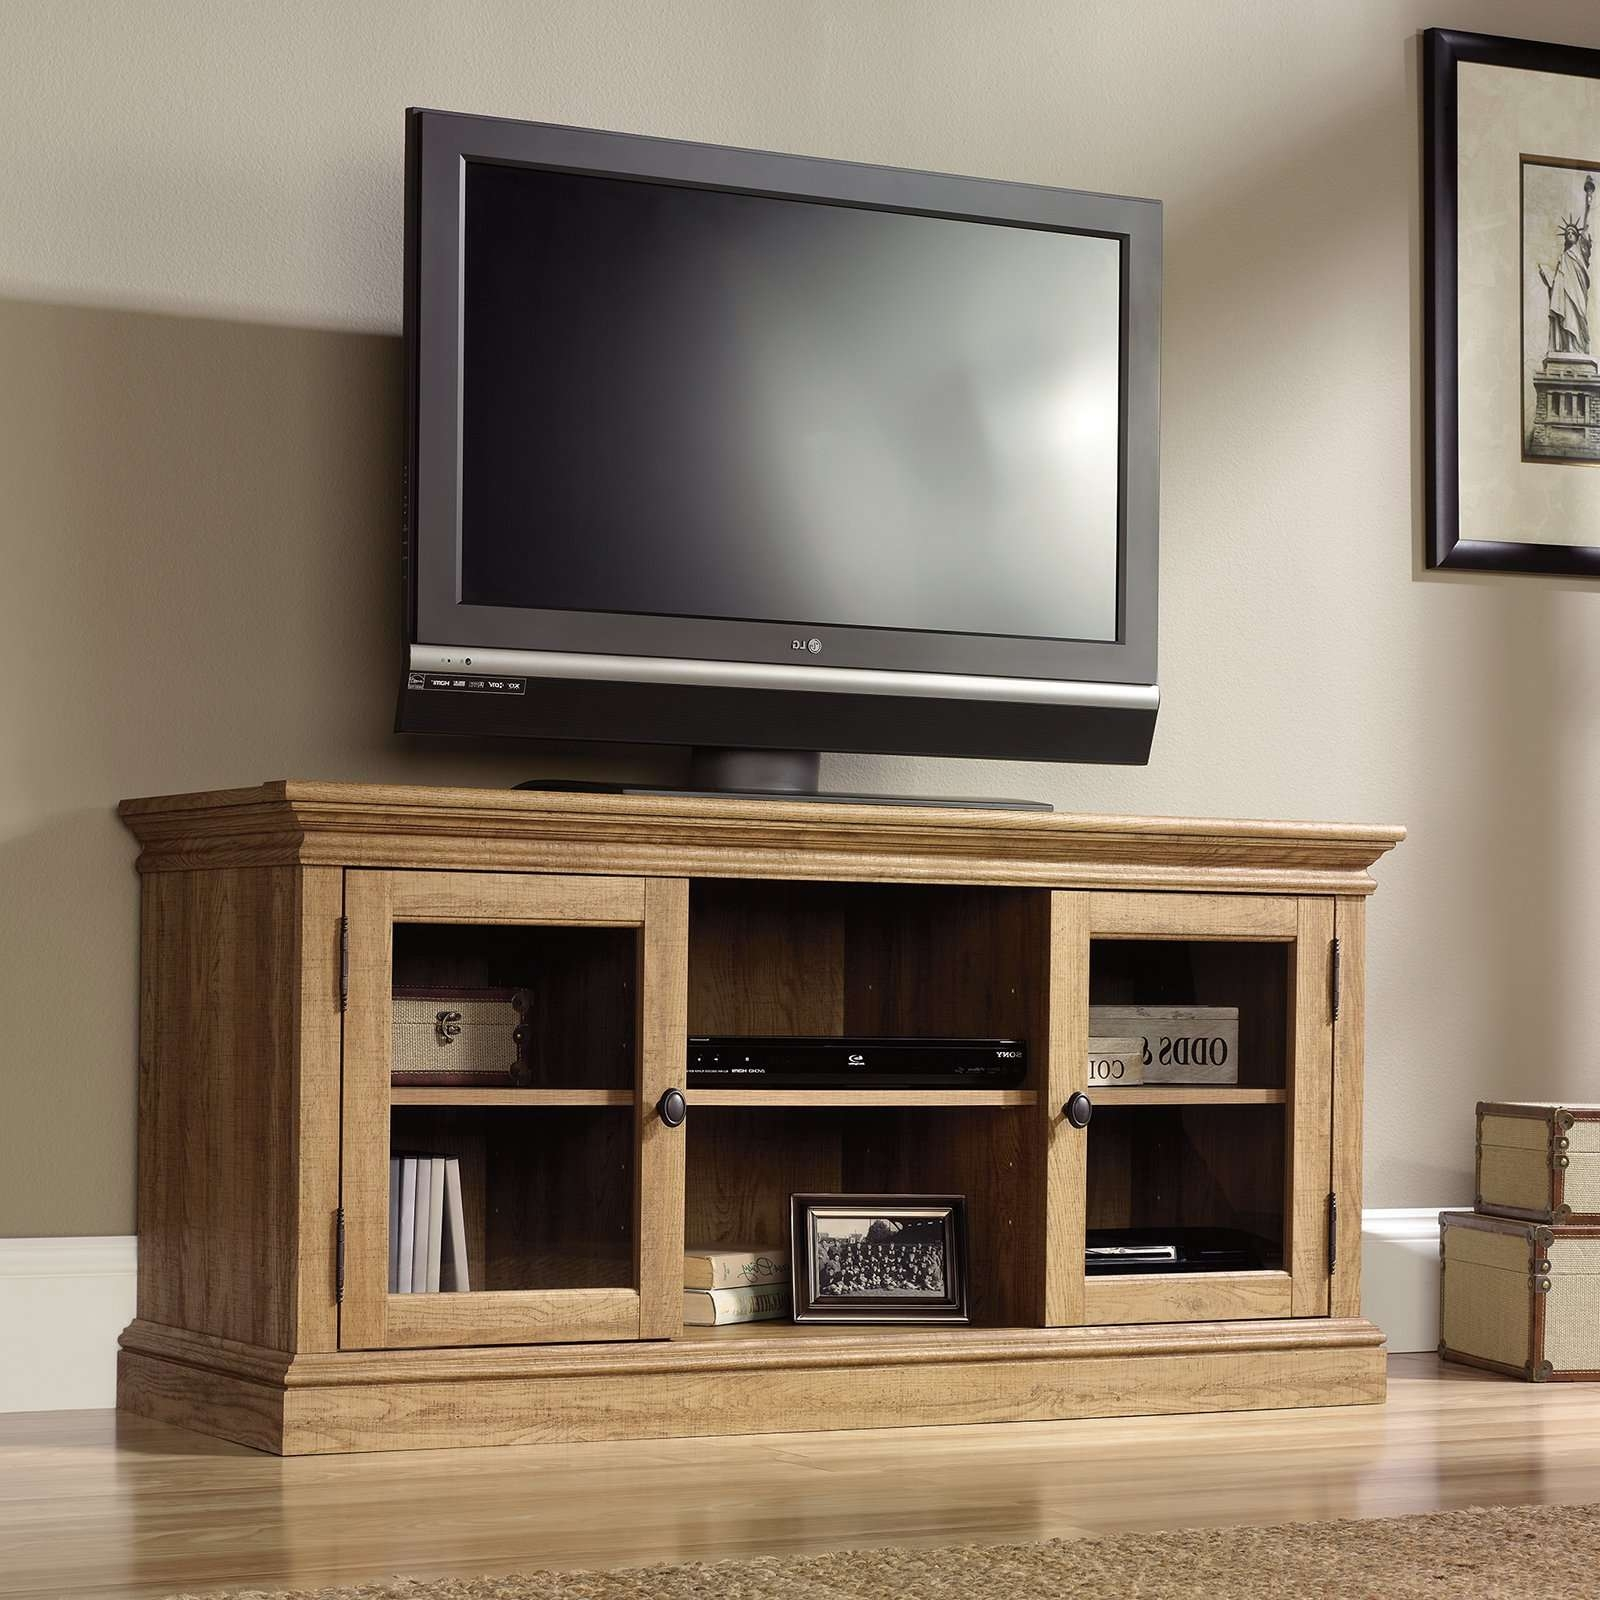 Oak Tv Consoles For Flat Screens : Innovative Designs Oak Tv Throughout Oak Tv Stands For Flat Screen (View 9 of 15)